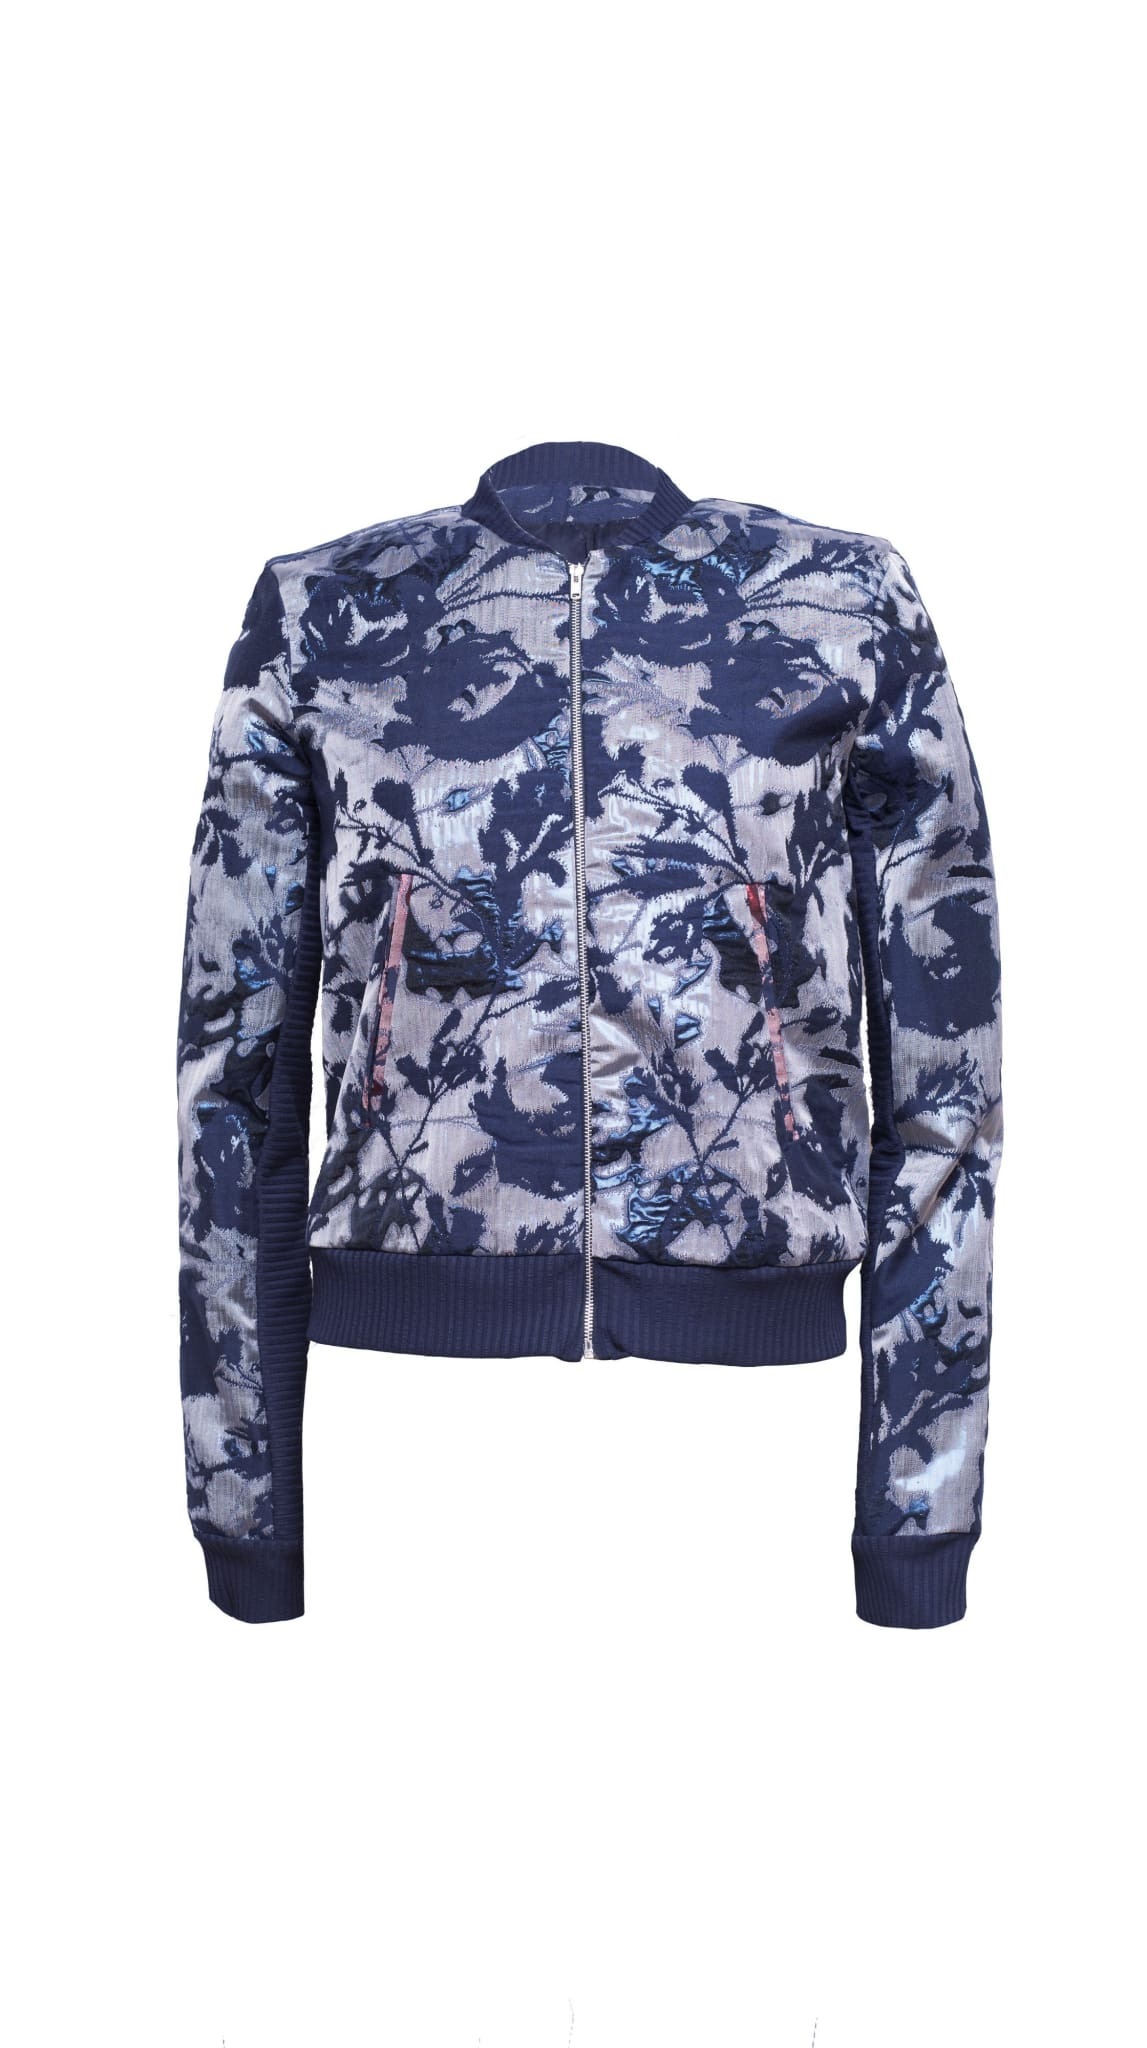 Navy Blue Metallic Rai Jacquard Bomber Jacket by VARYFORM | Nineteenth Amendment